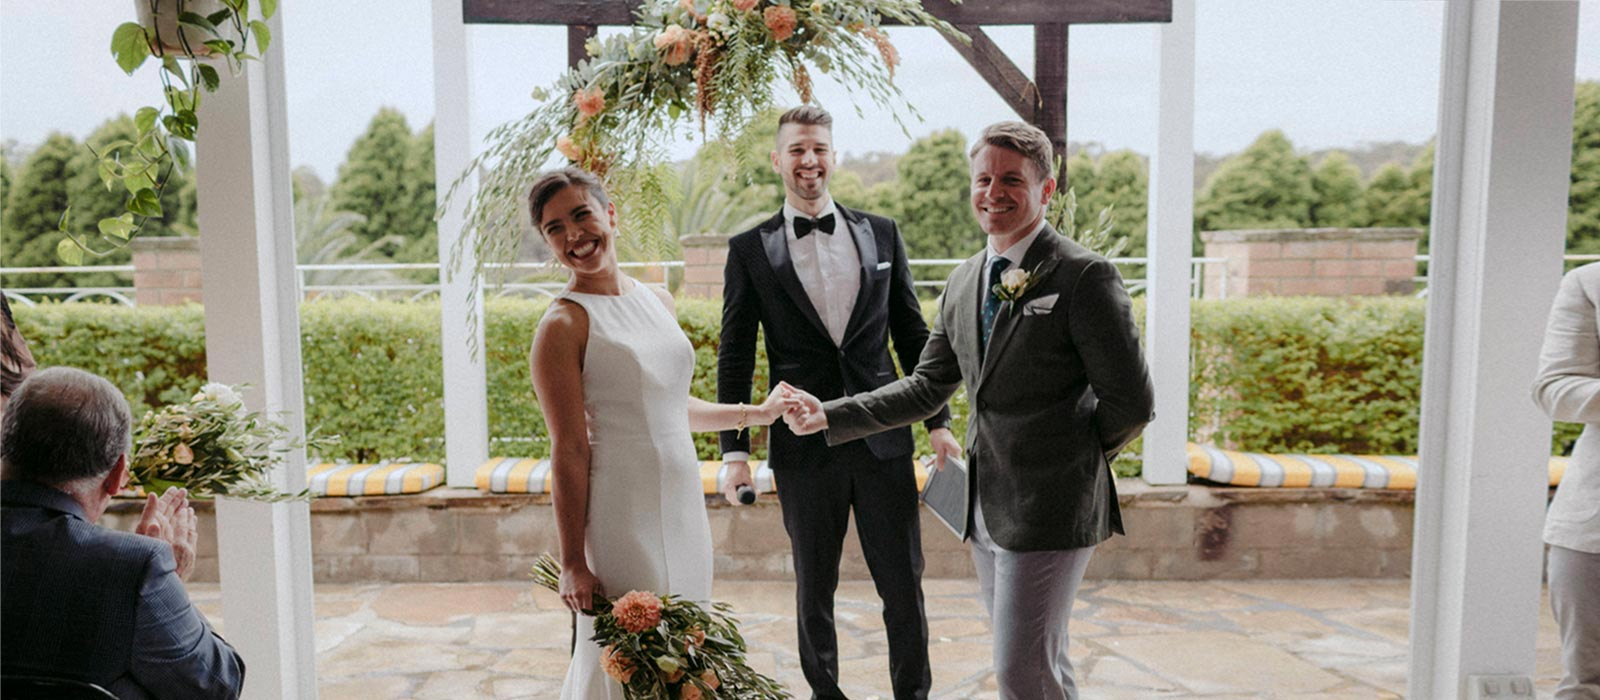 Questions about celebrants